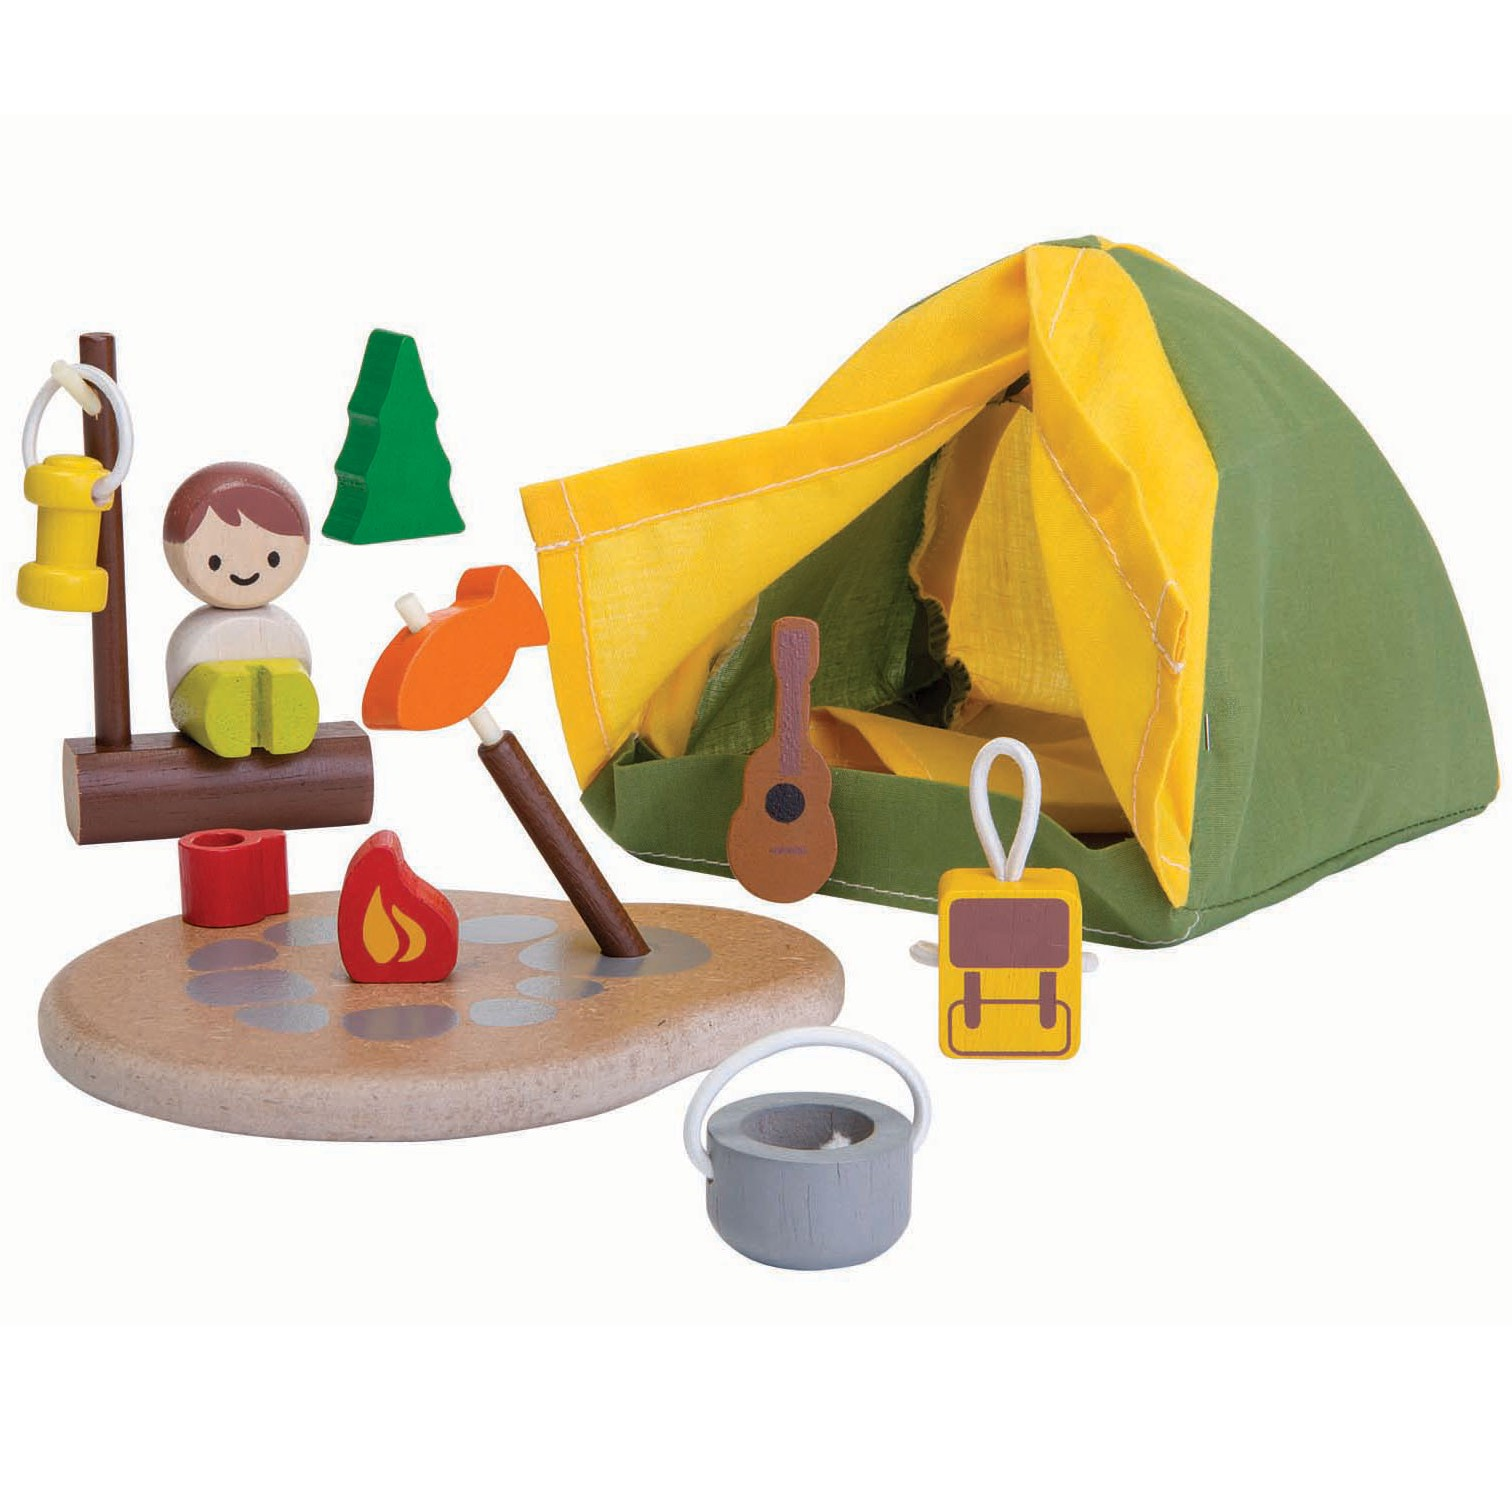 Camping Toys Product : Plan toys camping set planworld